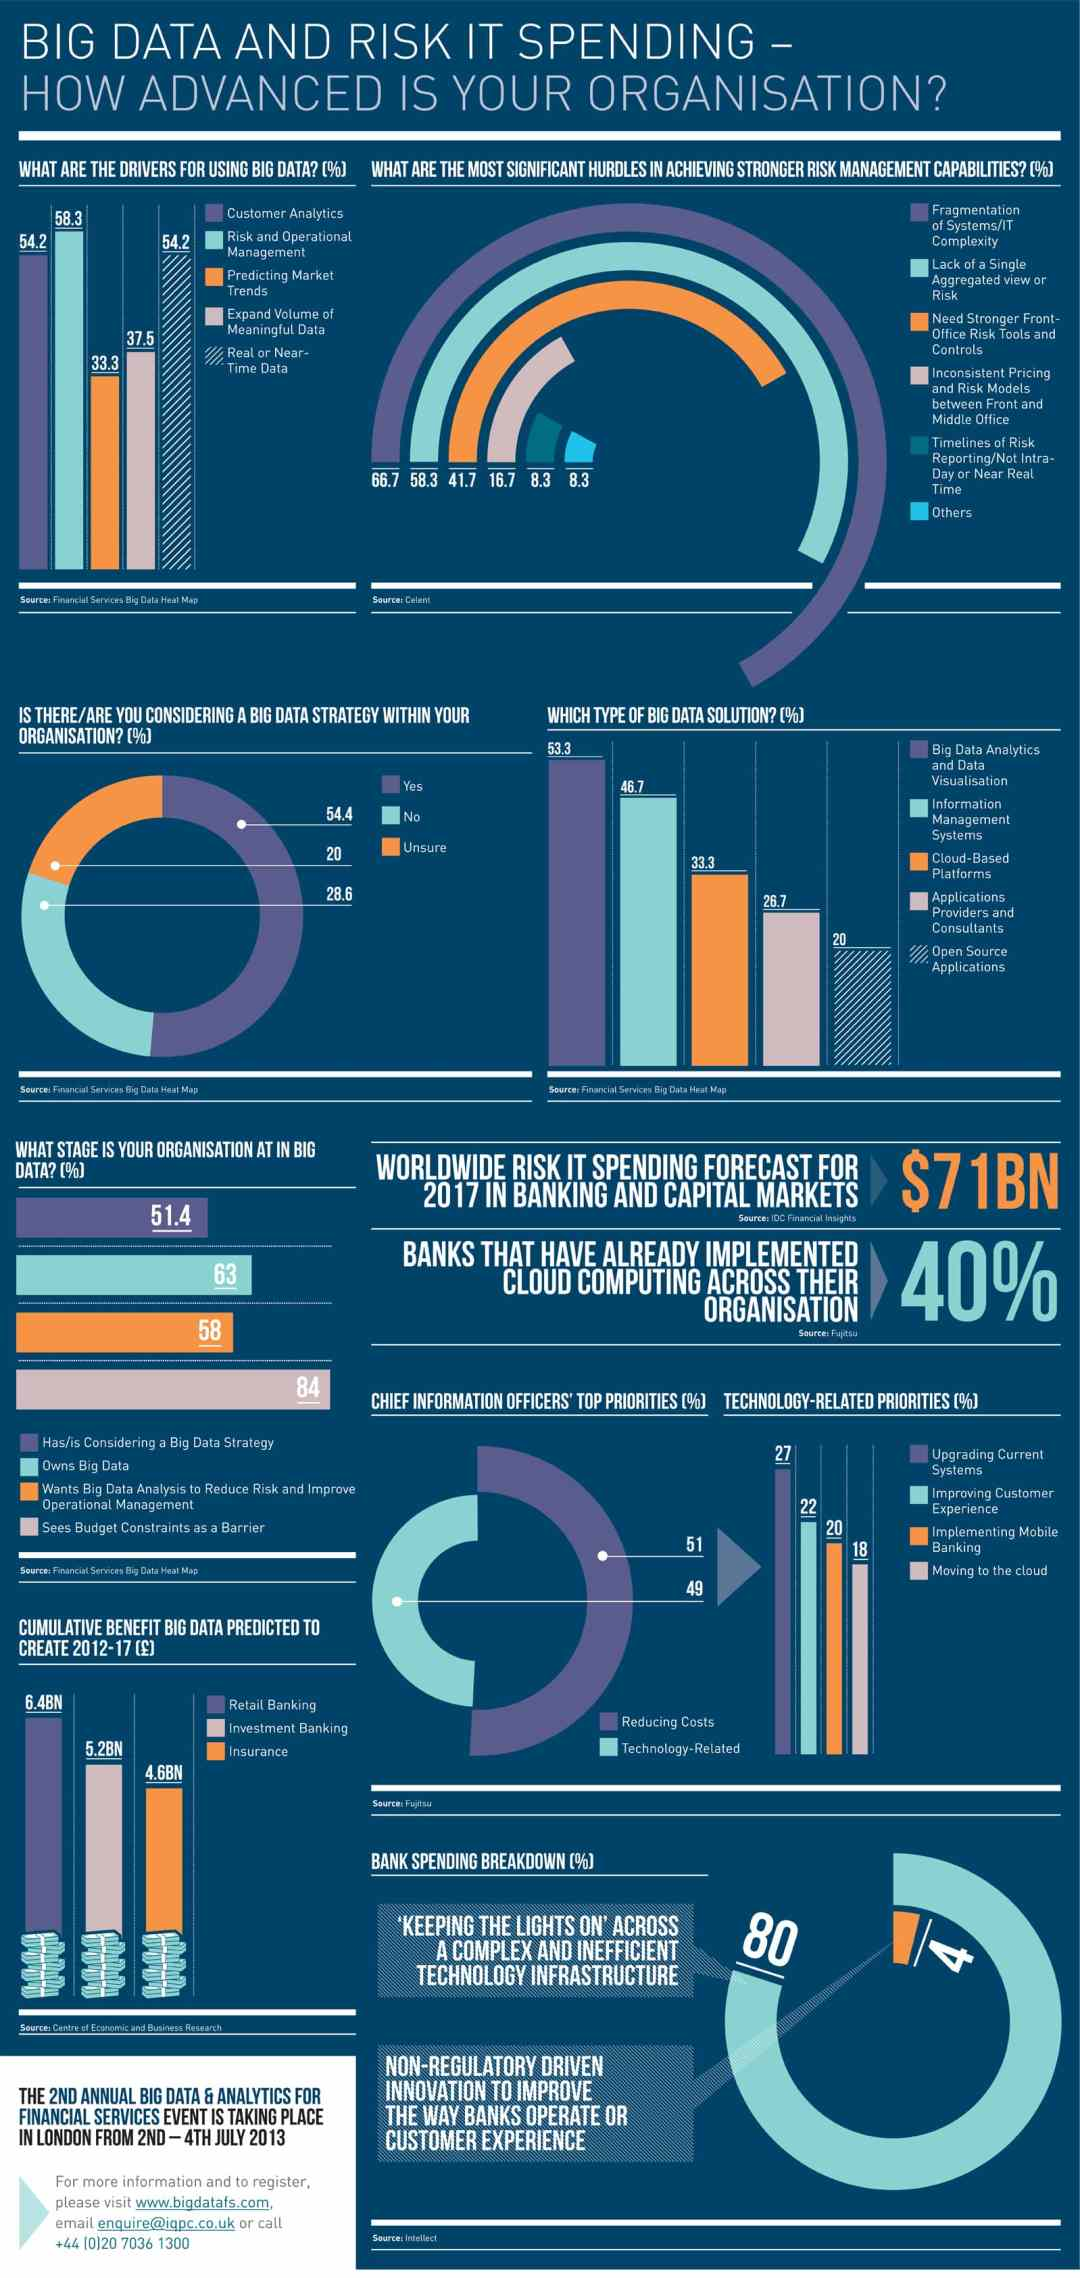 bds_20141120194841_Big-Data-And-Risk-IT-Spending-Infographic (1)